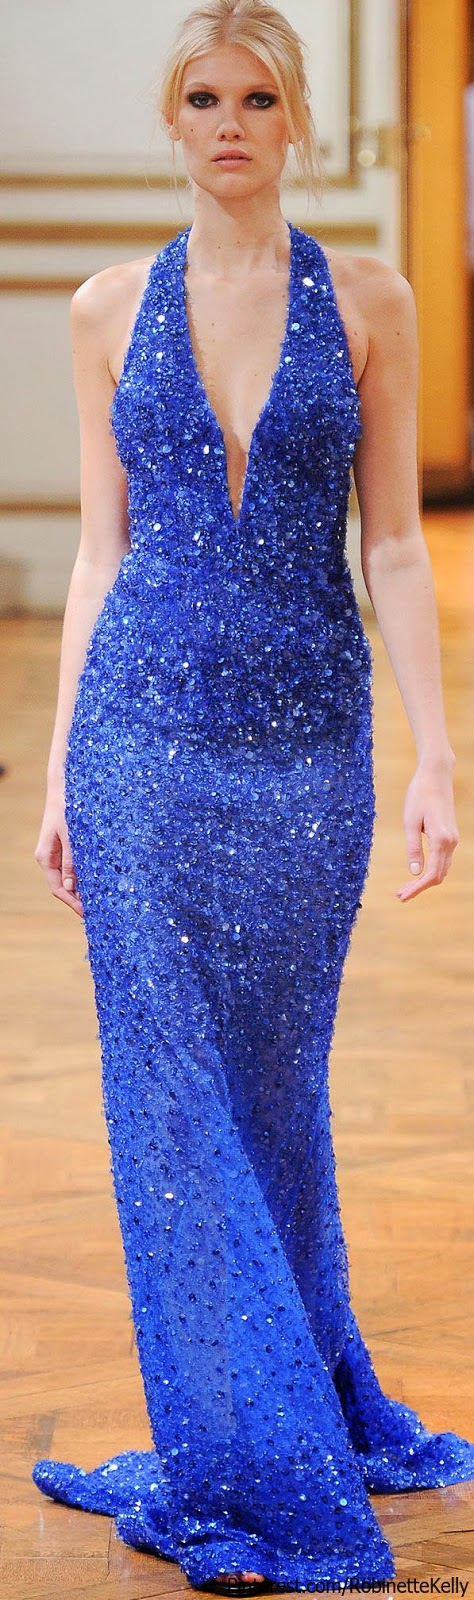 amazing royal blue Zuhair Murad gown, F/W 2013